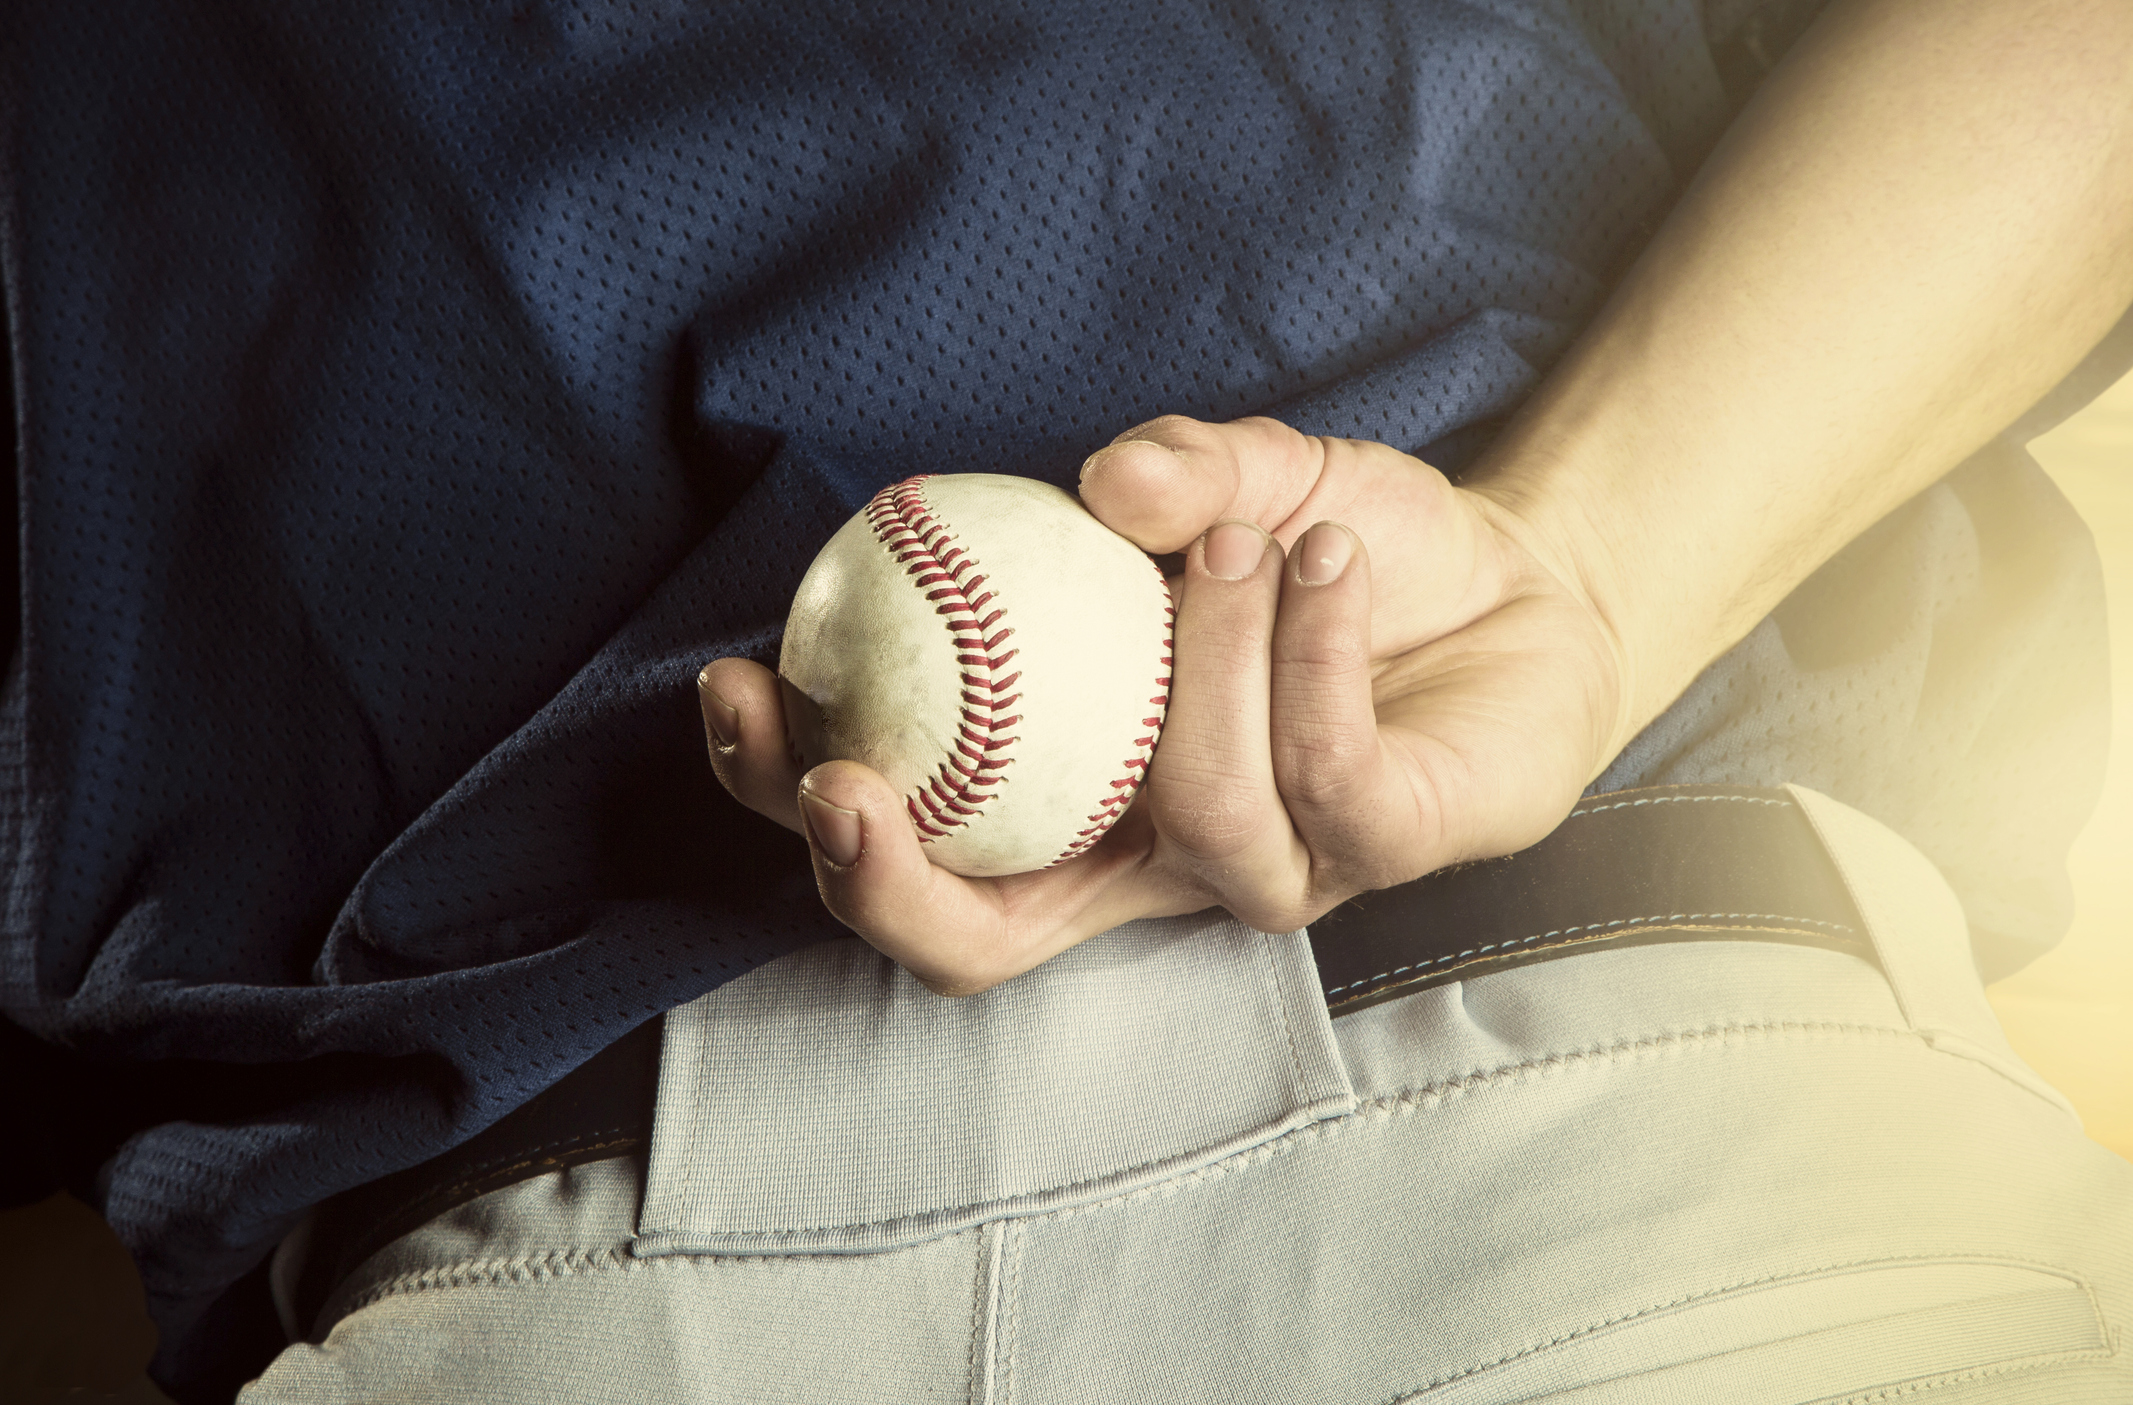 A close up view of the baseball pitchers hand just before throwing a fastball in a game. Focus on the fingers and the ball